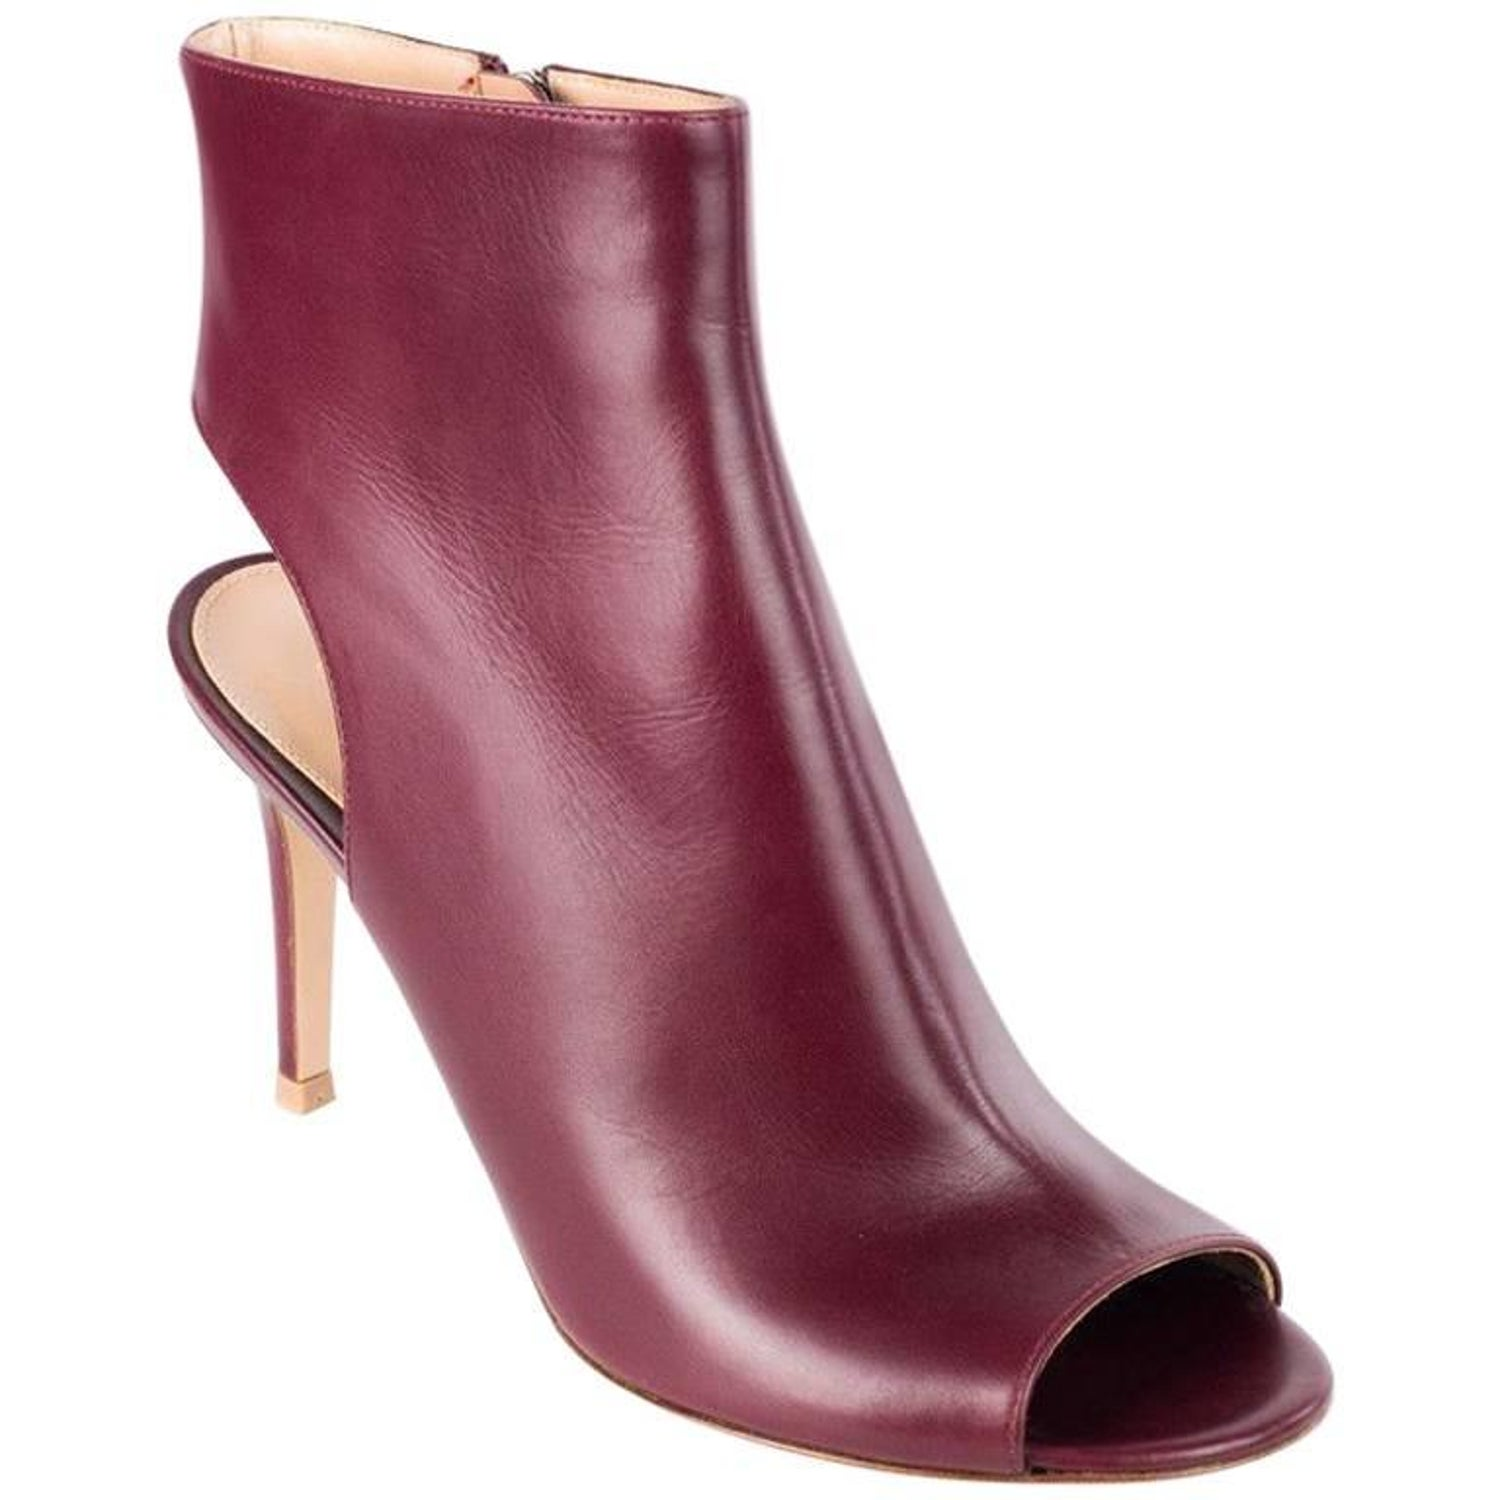 e4836a022de Gianvito Rossi Women s Burgundy Peep Toe Ankle Boots For Sale at 1stdibs